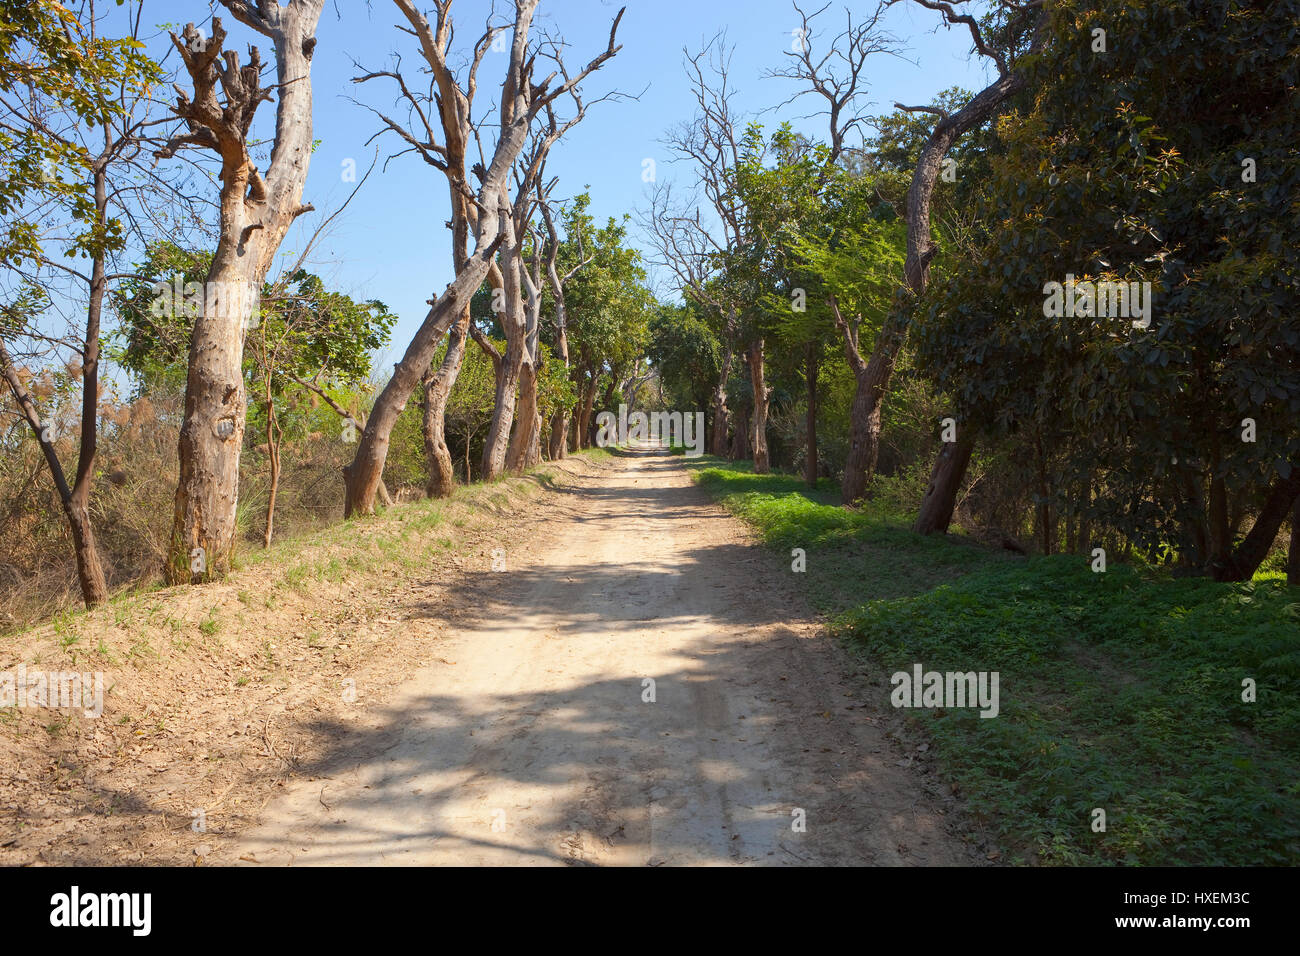 a tree lined sandy road at harike wetlands india under a blue sky - Stock Image